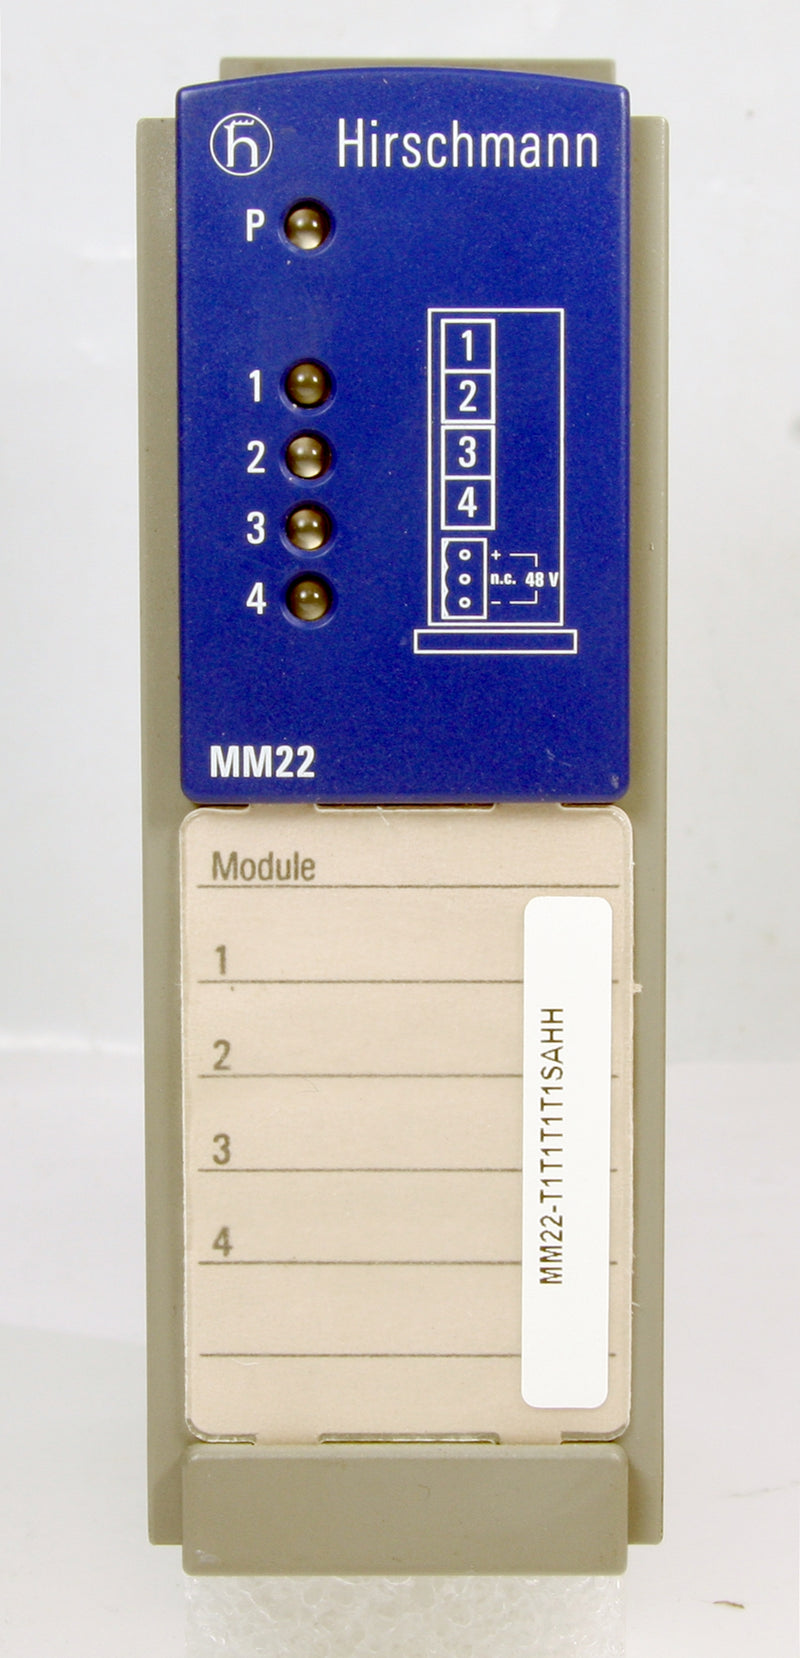 Hirschmann Mice Media Module MM22-T1T1T1T1SAHH